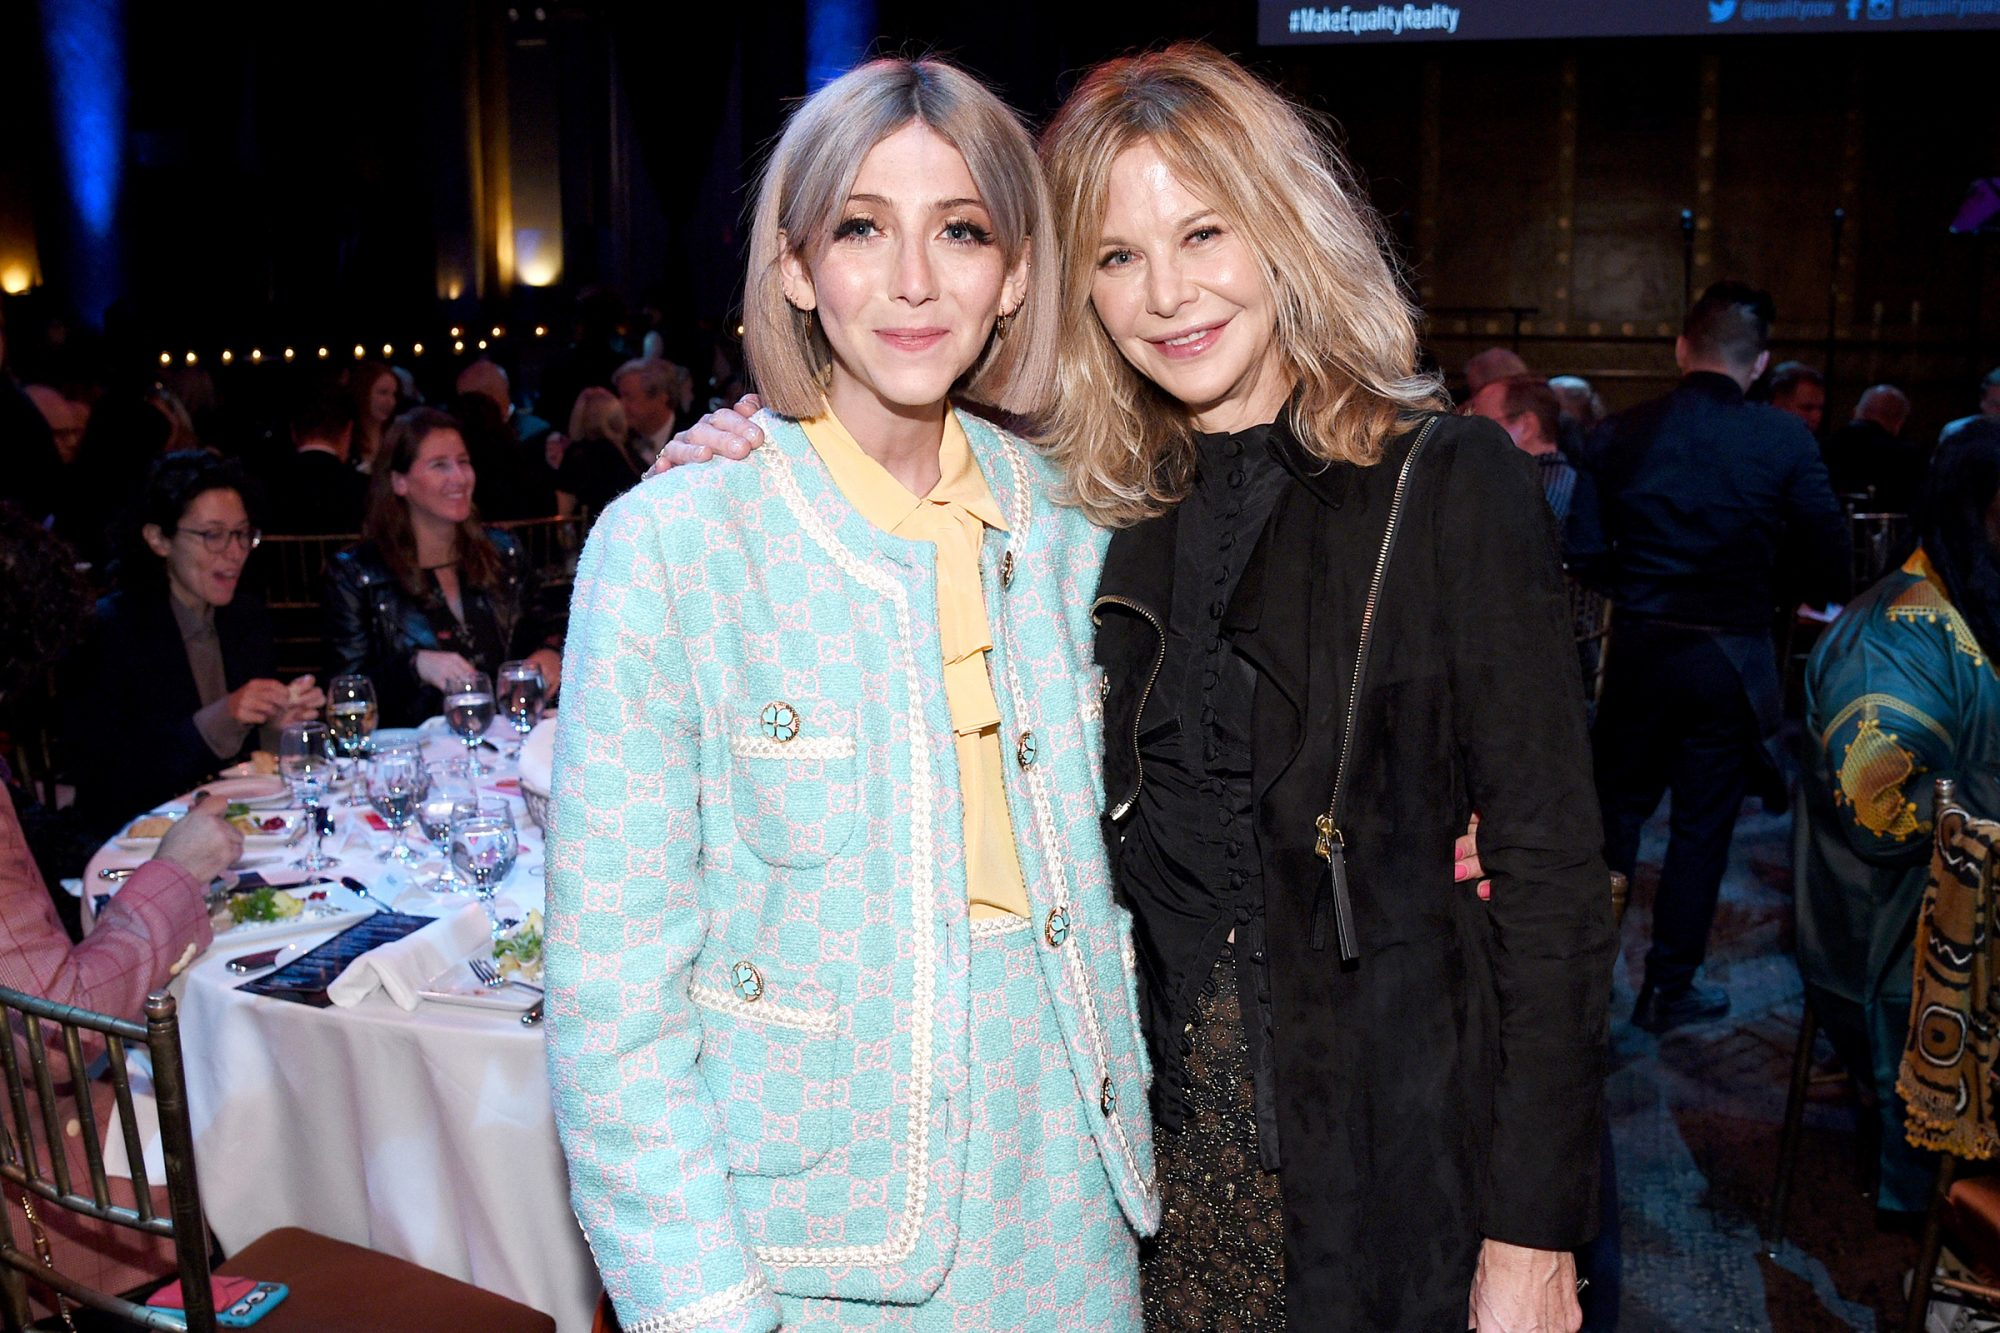 Scarlett Curtis and Meg Ryan attend the annual Make Equality Reality Gala hosted by Equality Now on November 19, 2019 in New York City